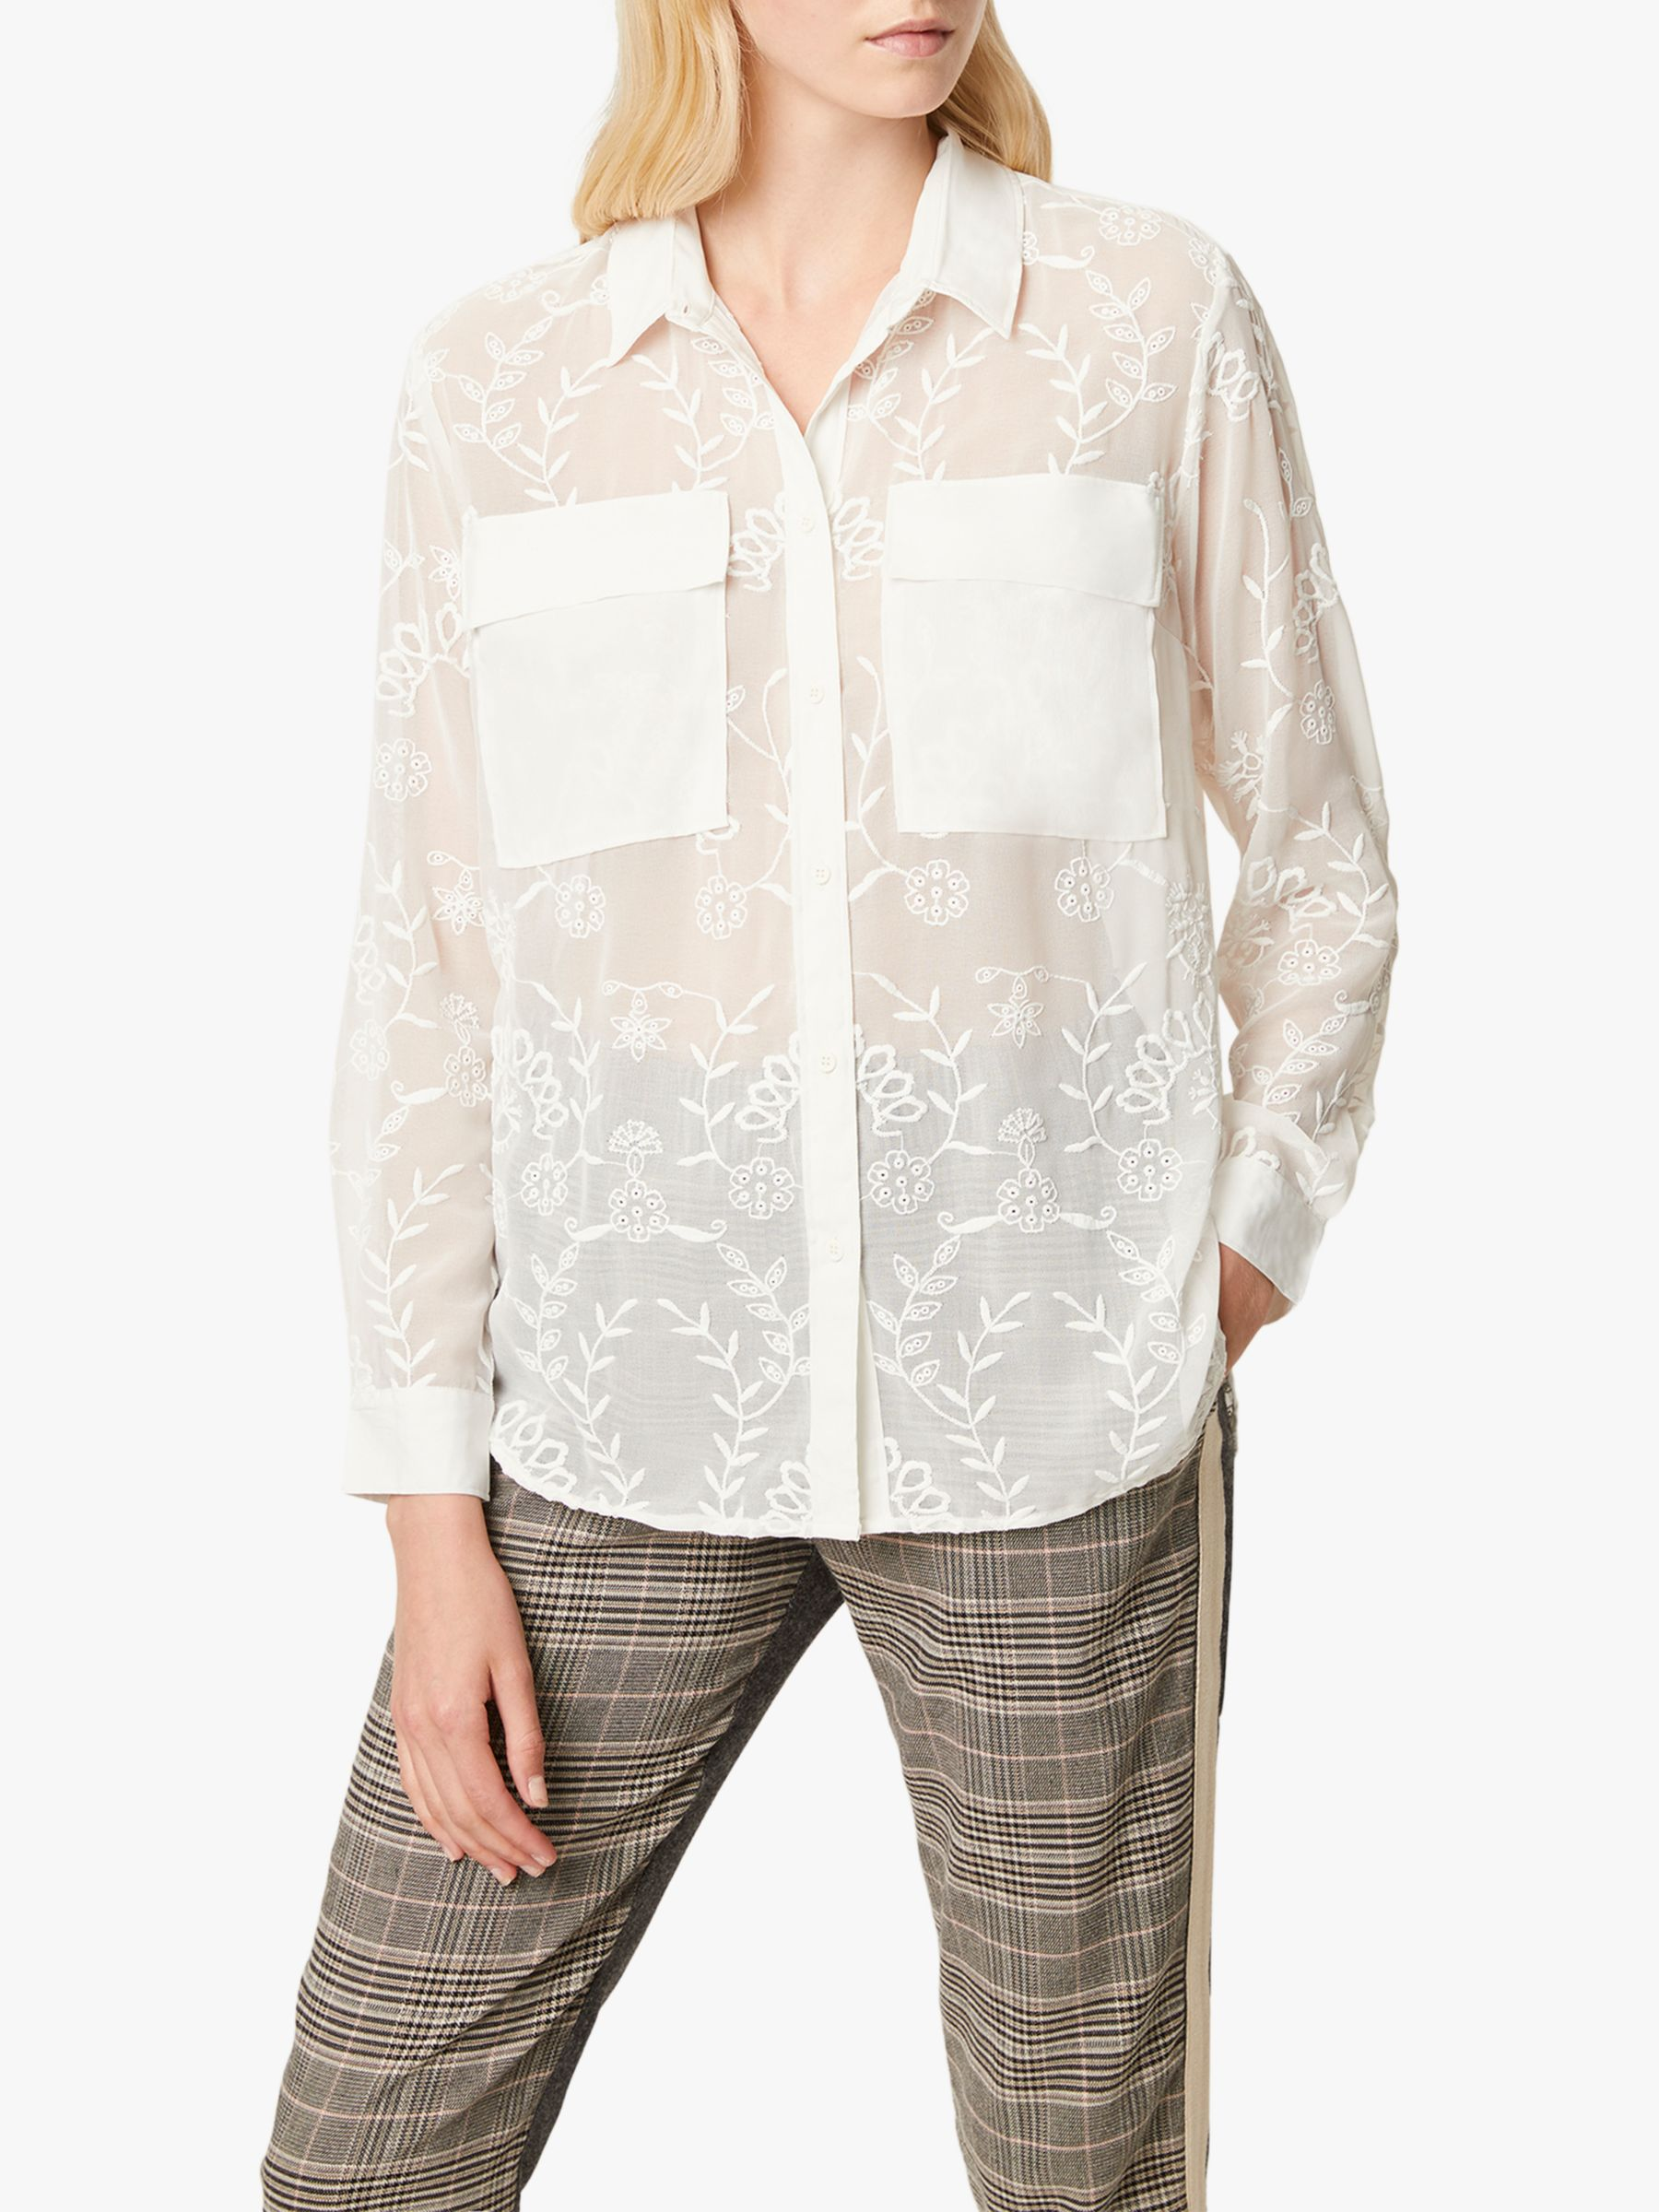 French Connection French Connection Cornelia Embroidered Shirt, White